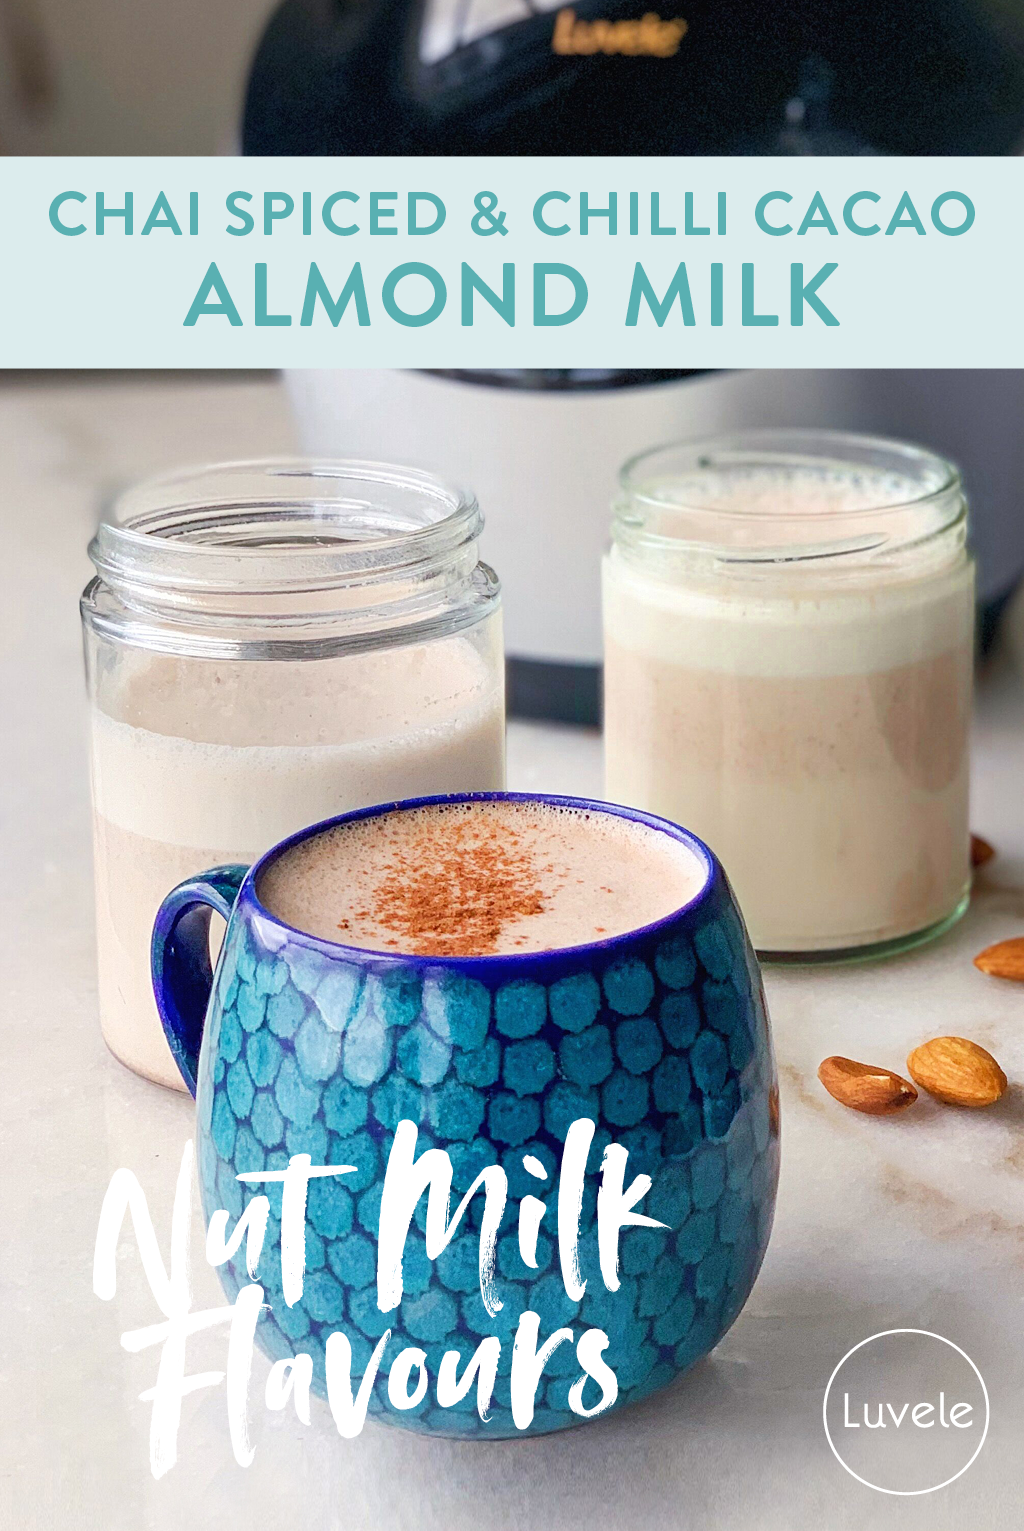 Chilli cacao & Chai spice almond milk recipe